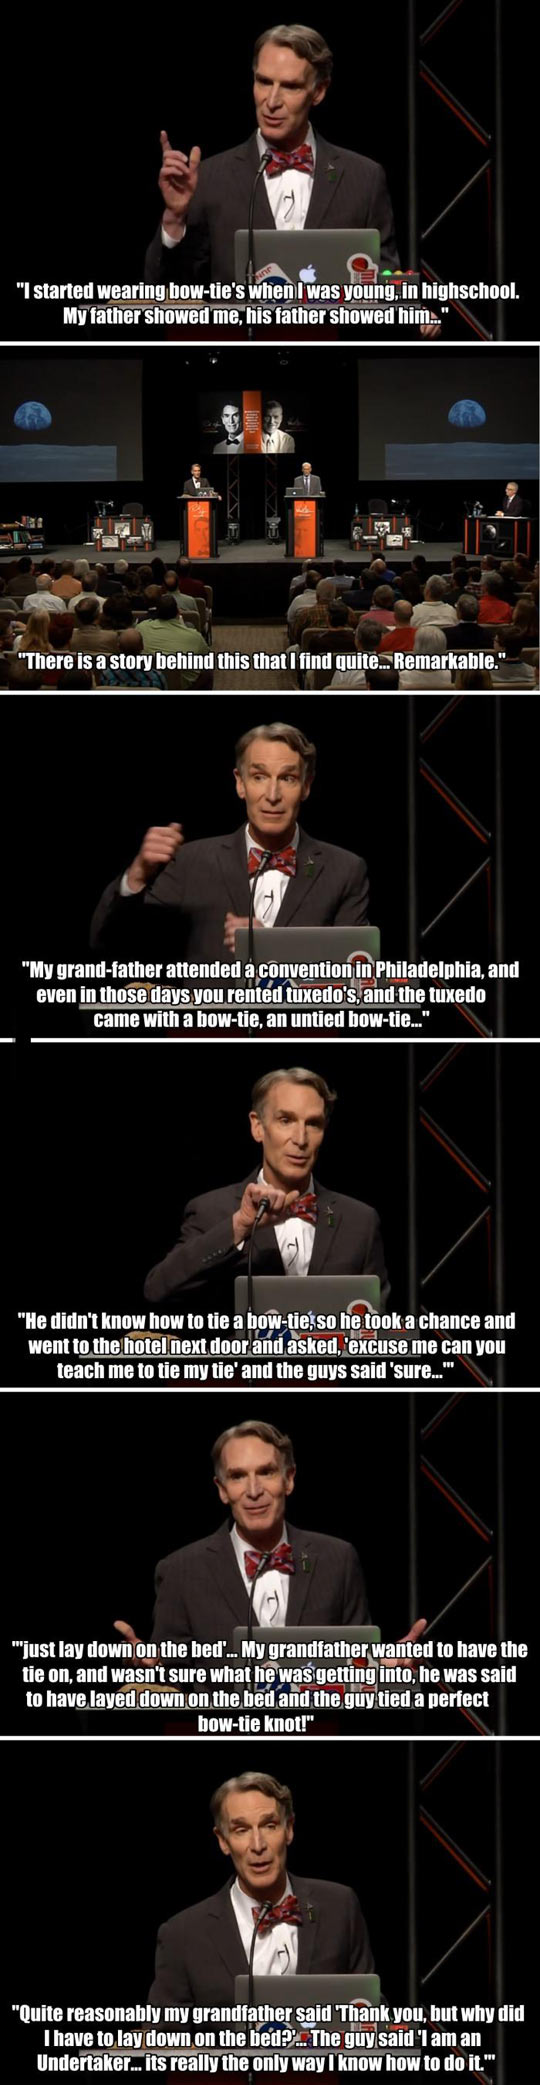 The Funny Story Behind Bill Nye